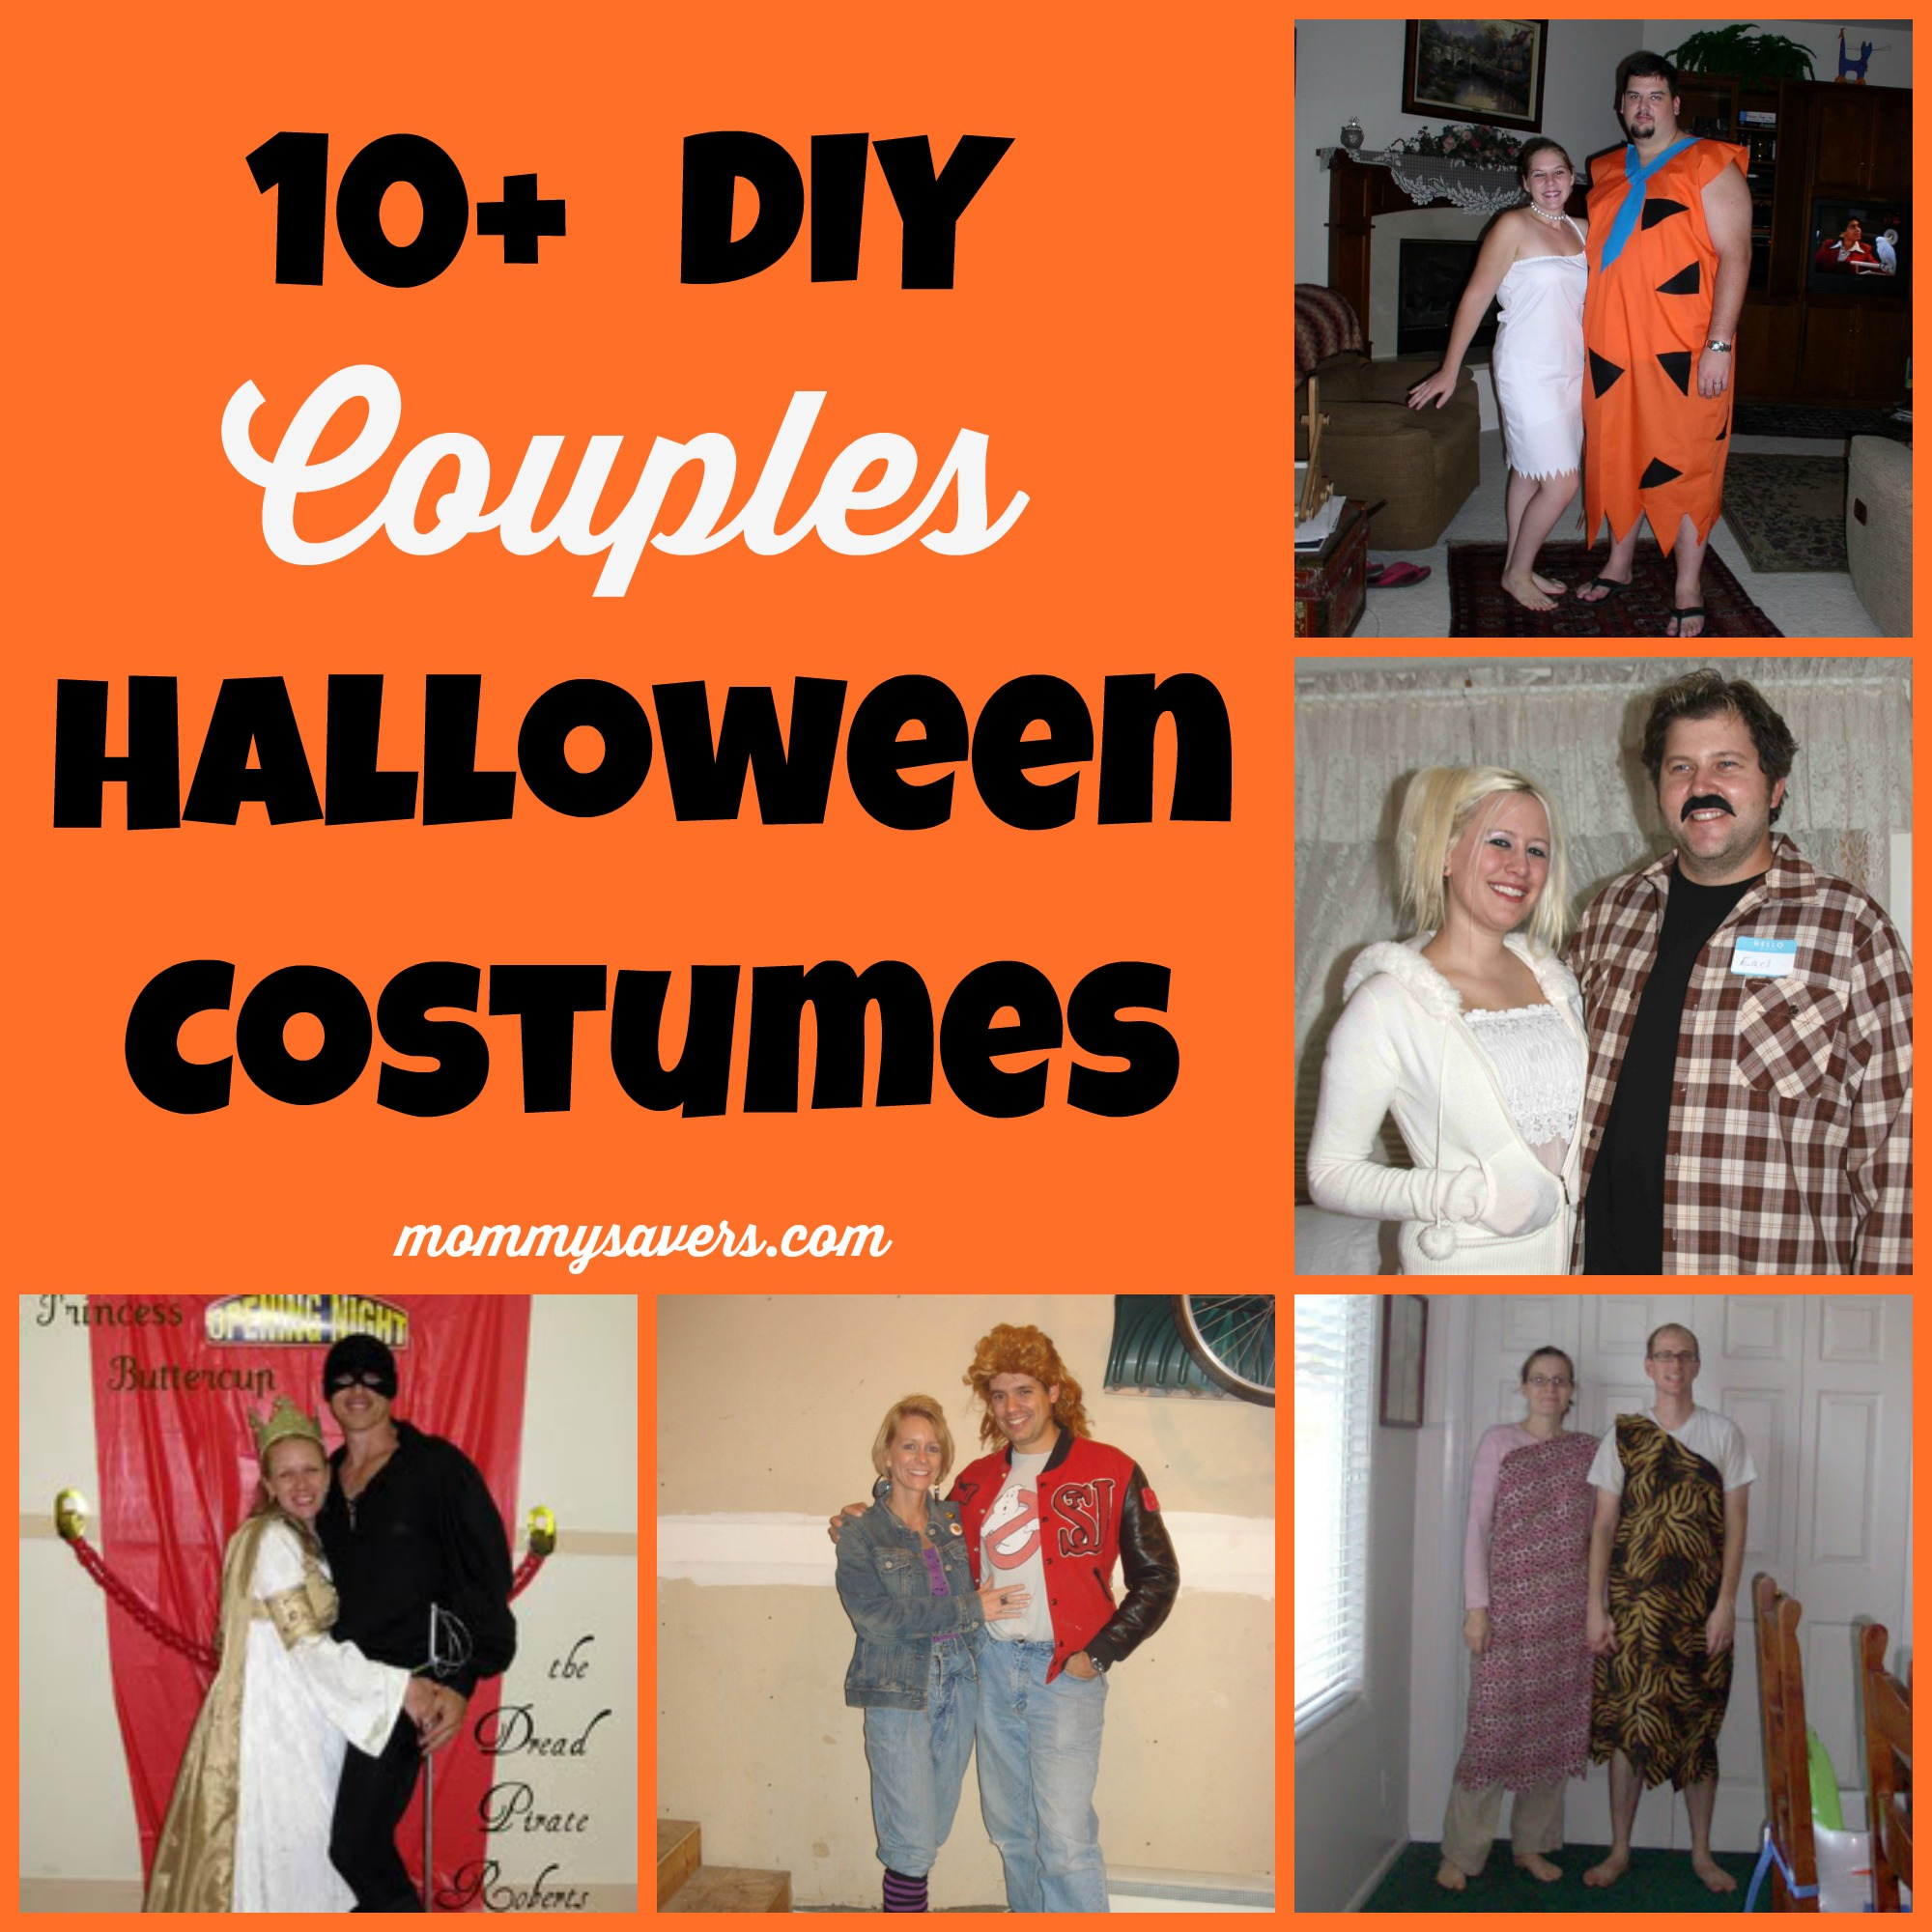 Diy couples halloween costumes 10 ideas mommysavers mommysavers diy couples halloween costumes solutioingenieria Choice Image